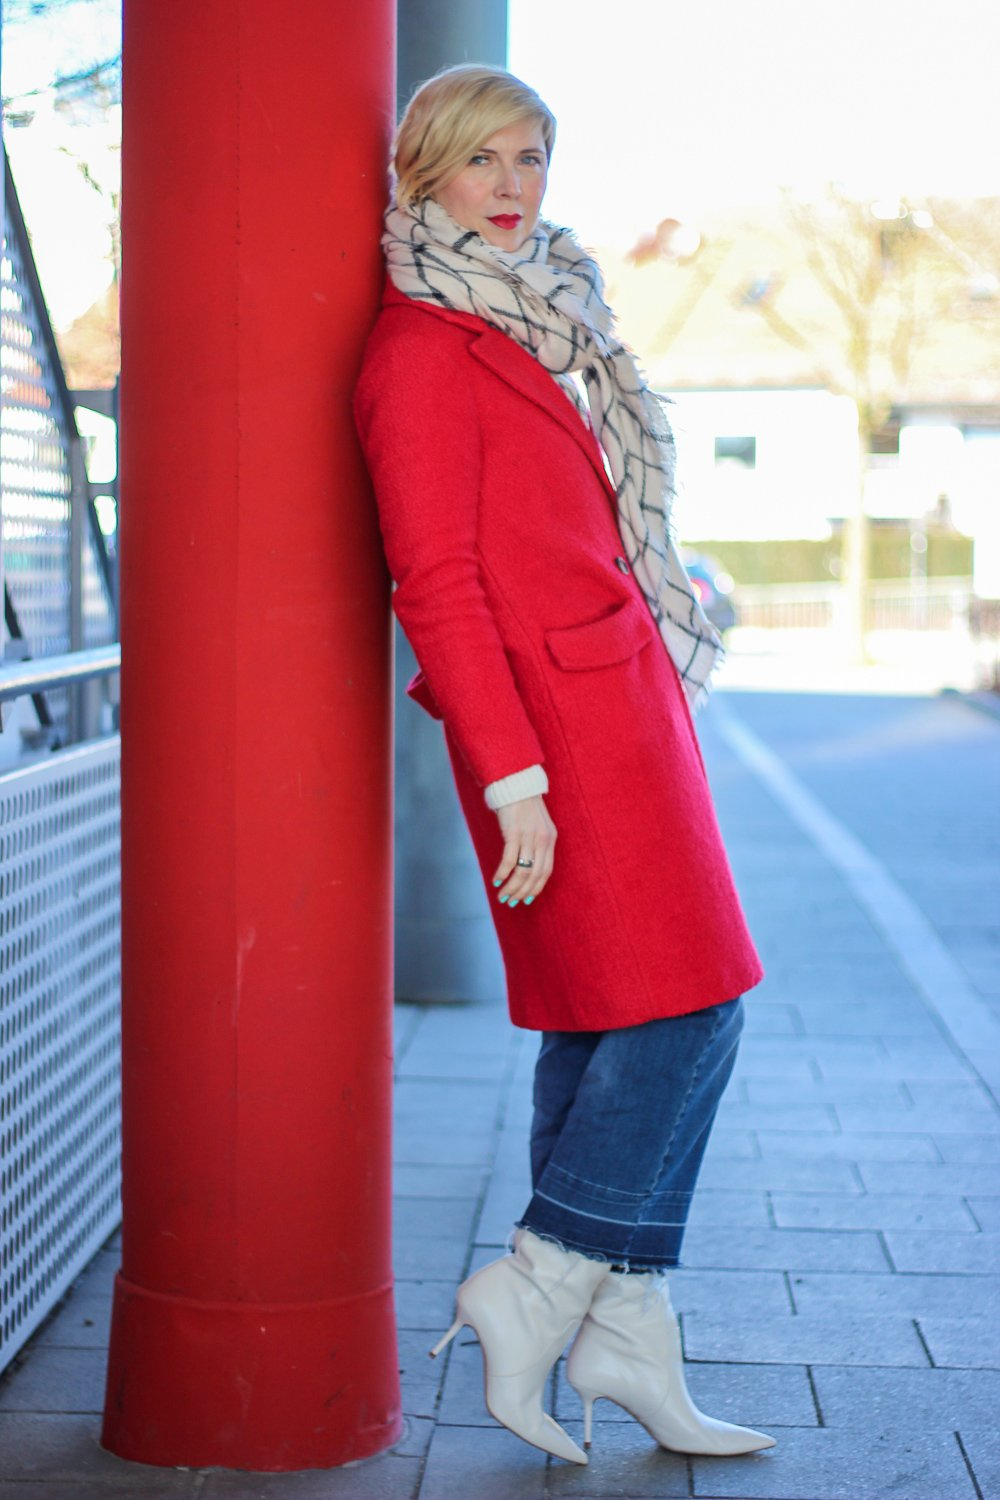 conny doll lifestyle: Valentinstag, roter Mantel, casual Denimculotte und Stiefel